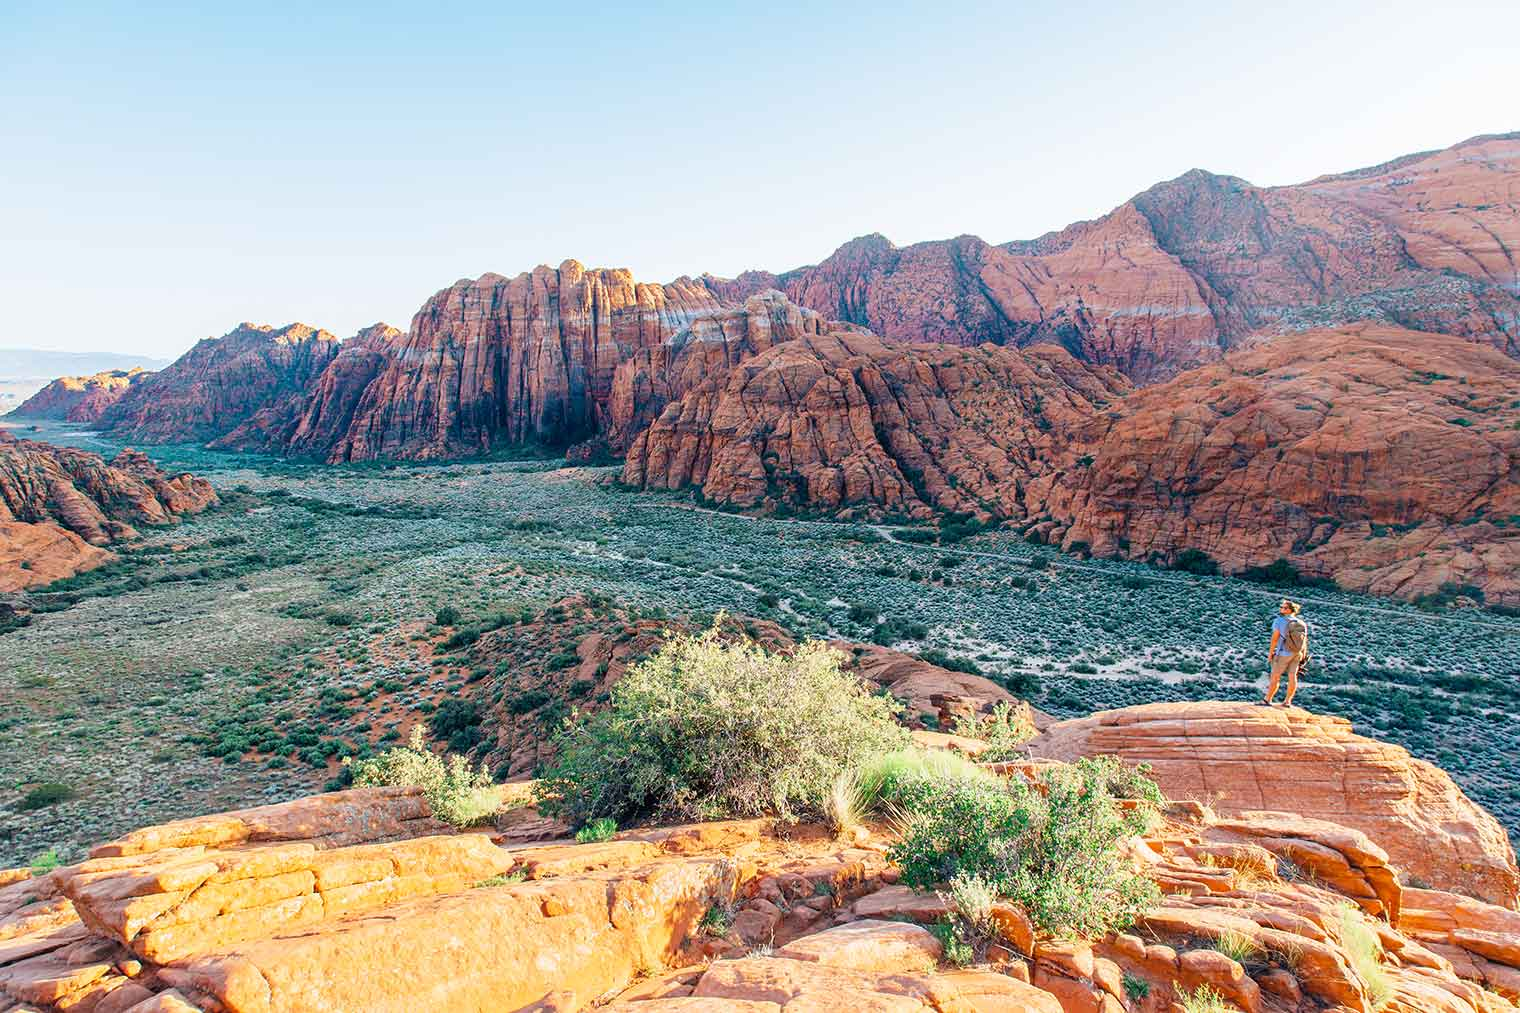 Snow Canyon is one of the primer outdoor destinations near St. George, Utah - between hiking, biking, climbing, and camping, there's something for everyone at this state park!